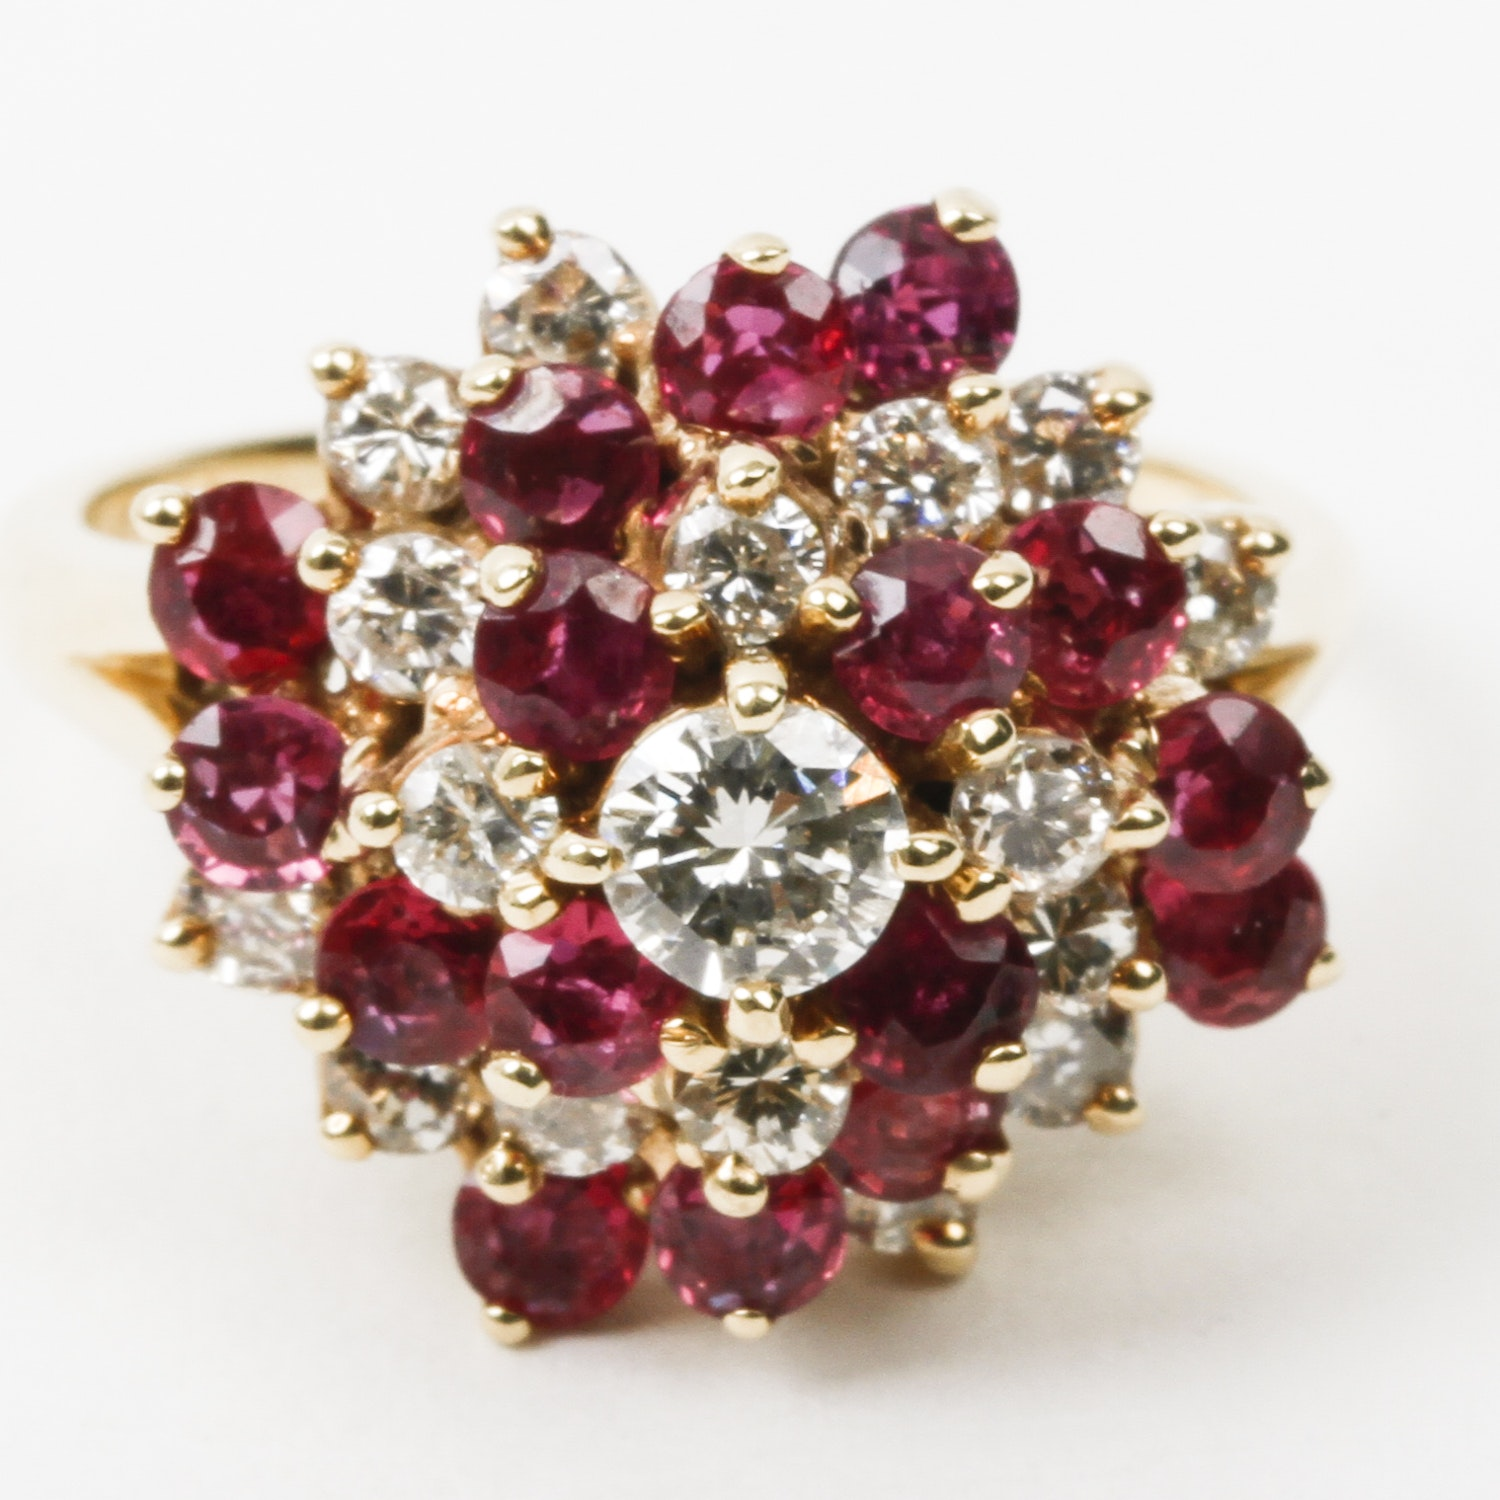 14K Yellow Gold, Ruby, and Diamond Cluster Ring